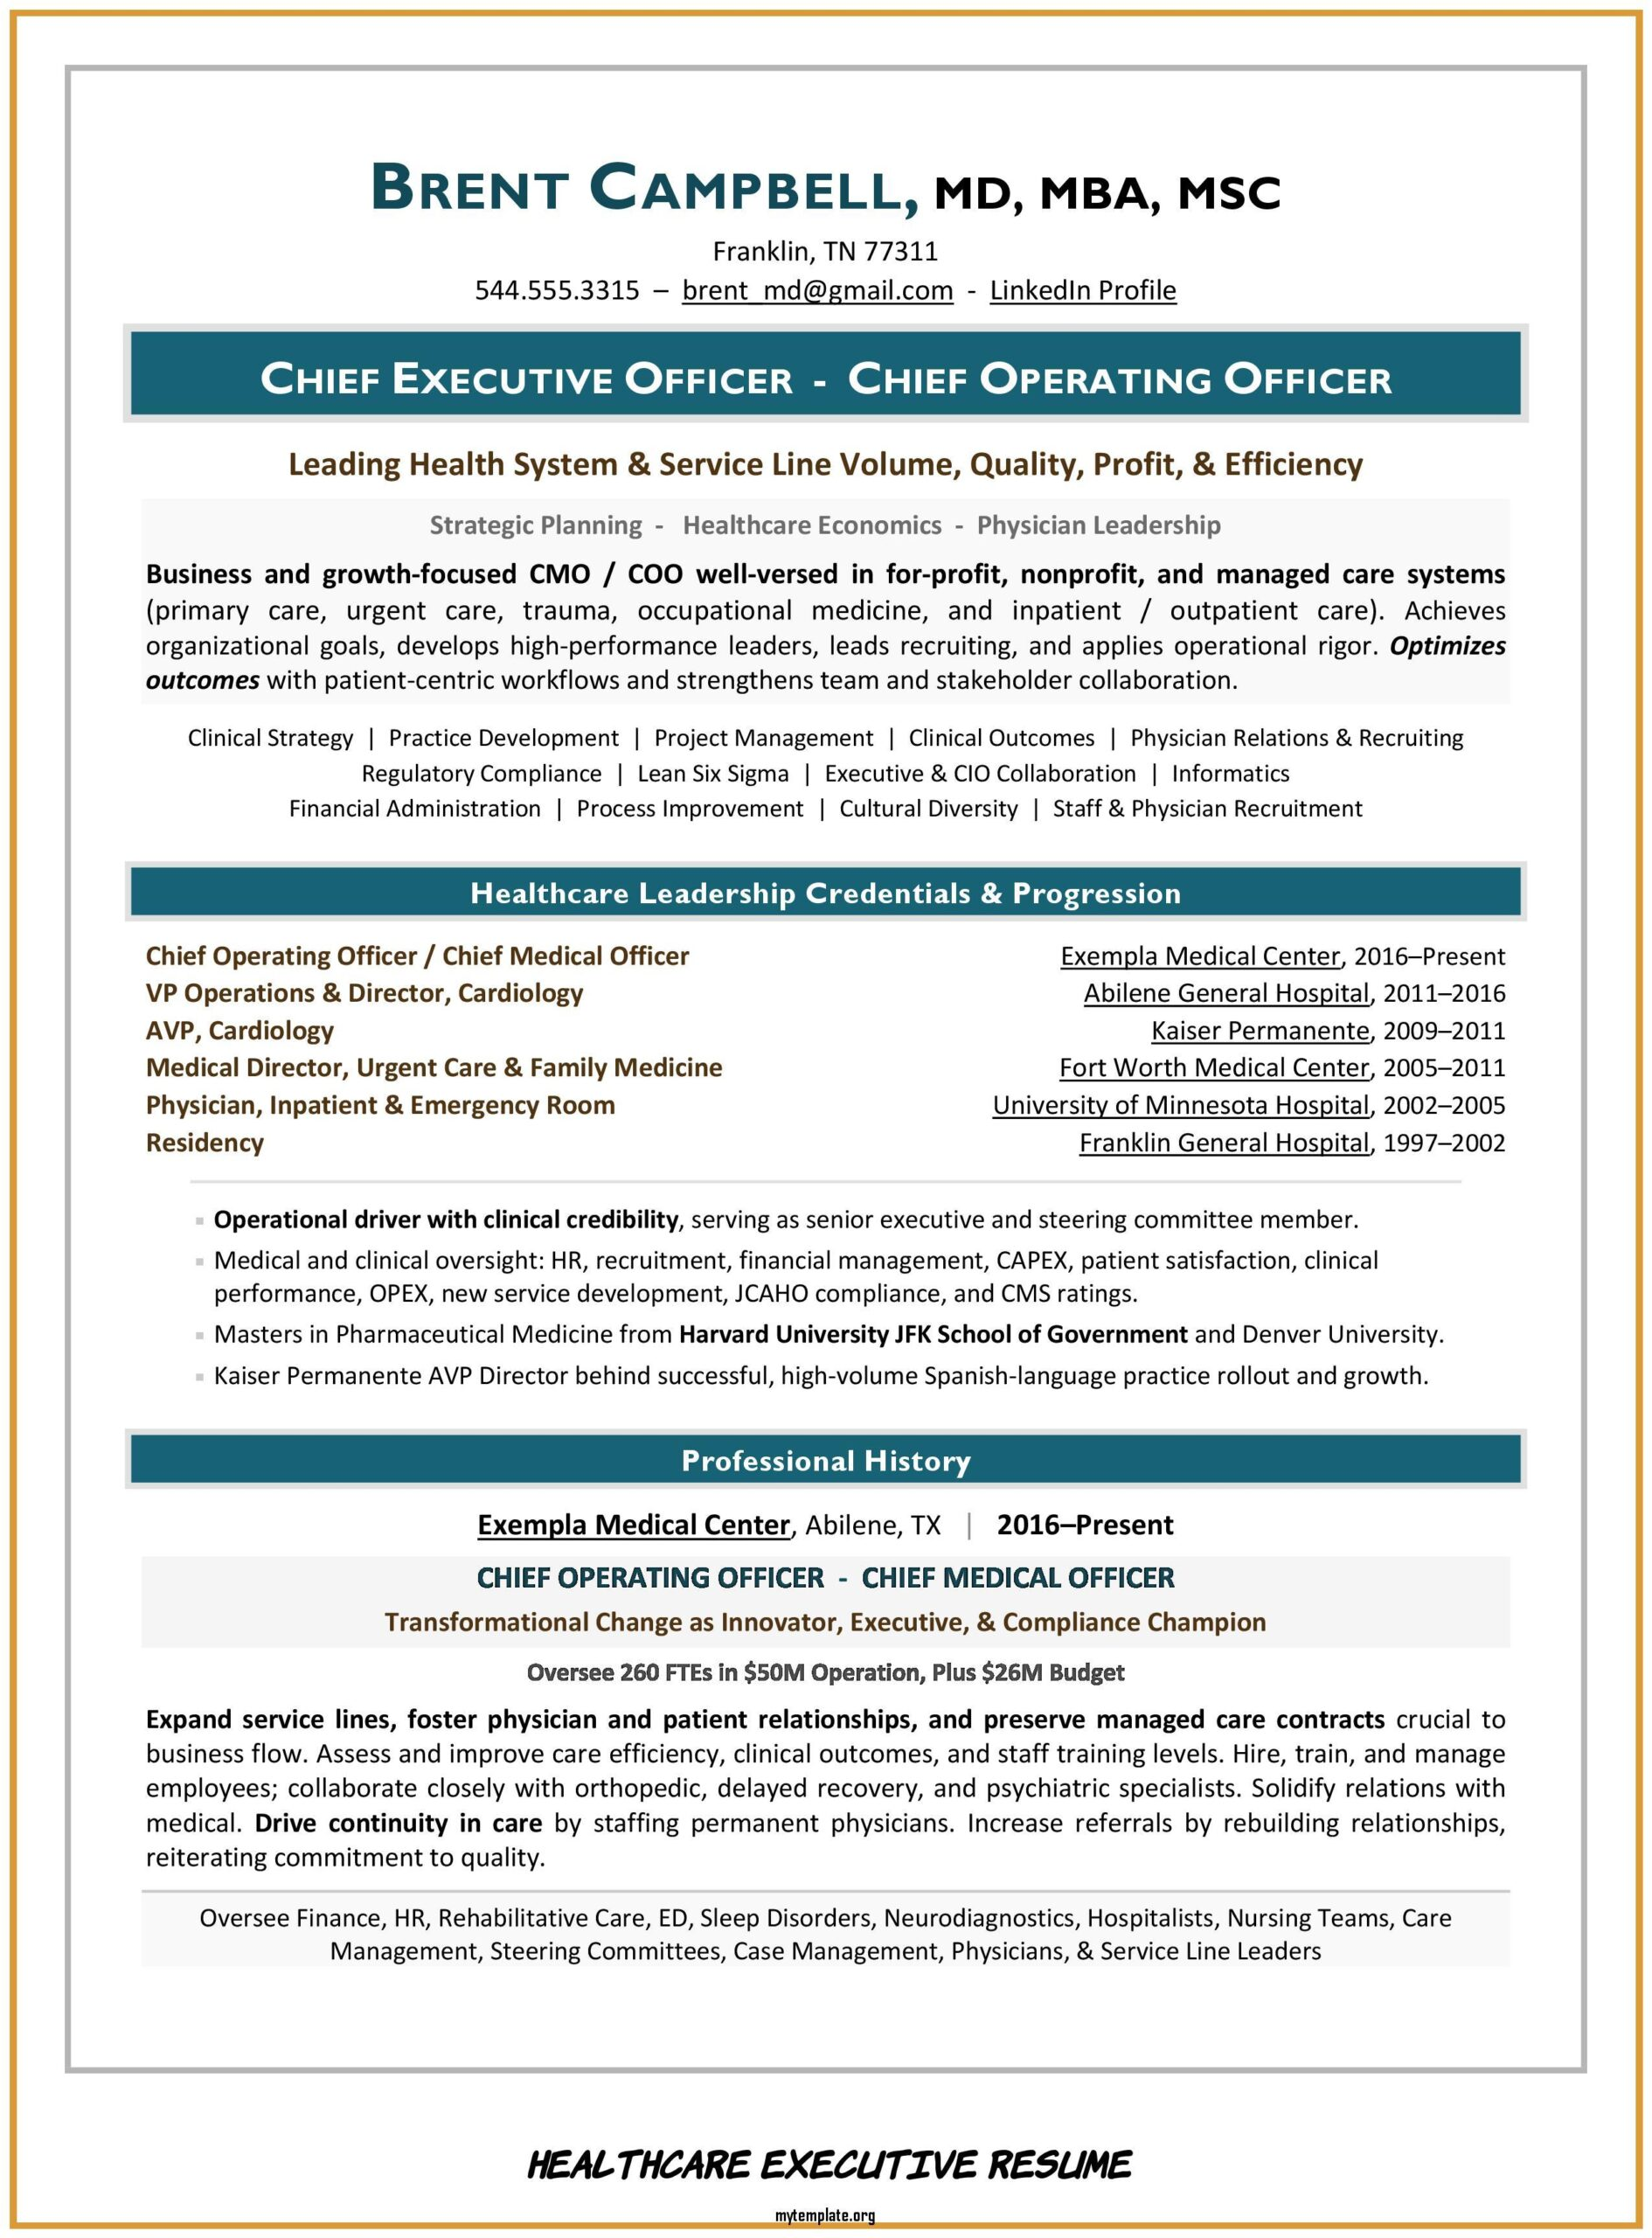 healthcare executive resume free templates of sample ceo and cmo pin respiratory Resume Healthcare Executive Resume